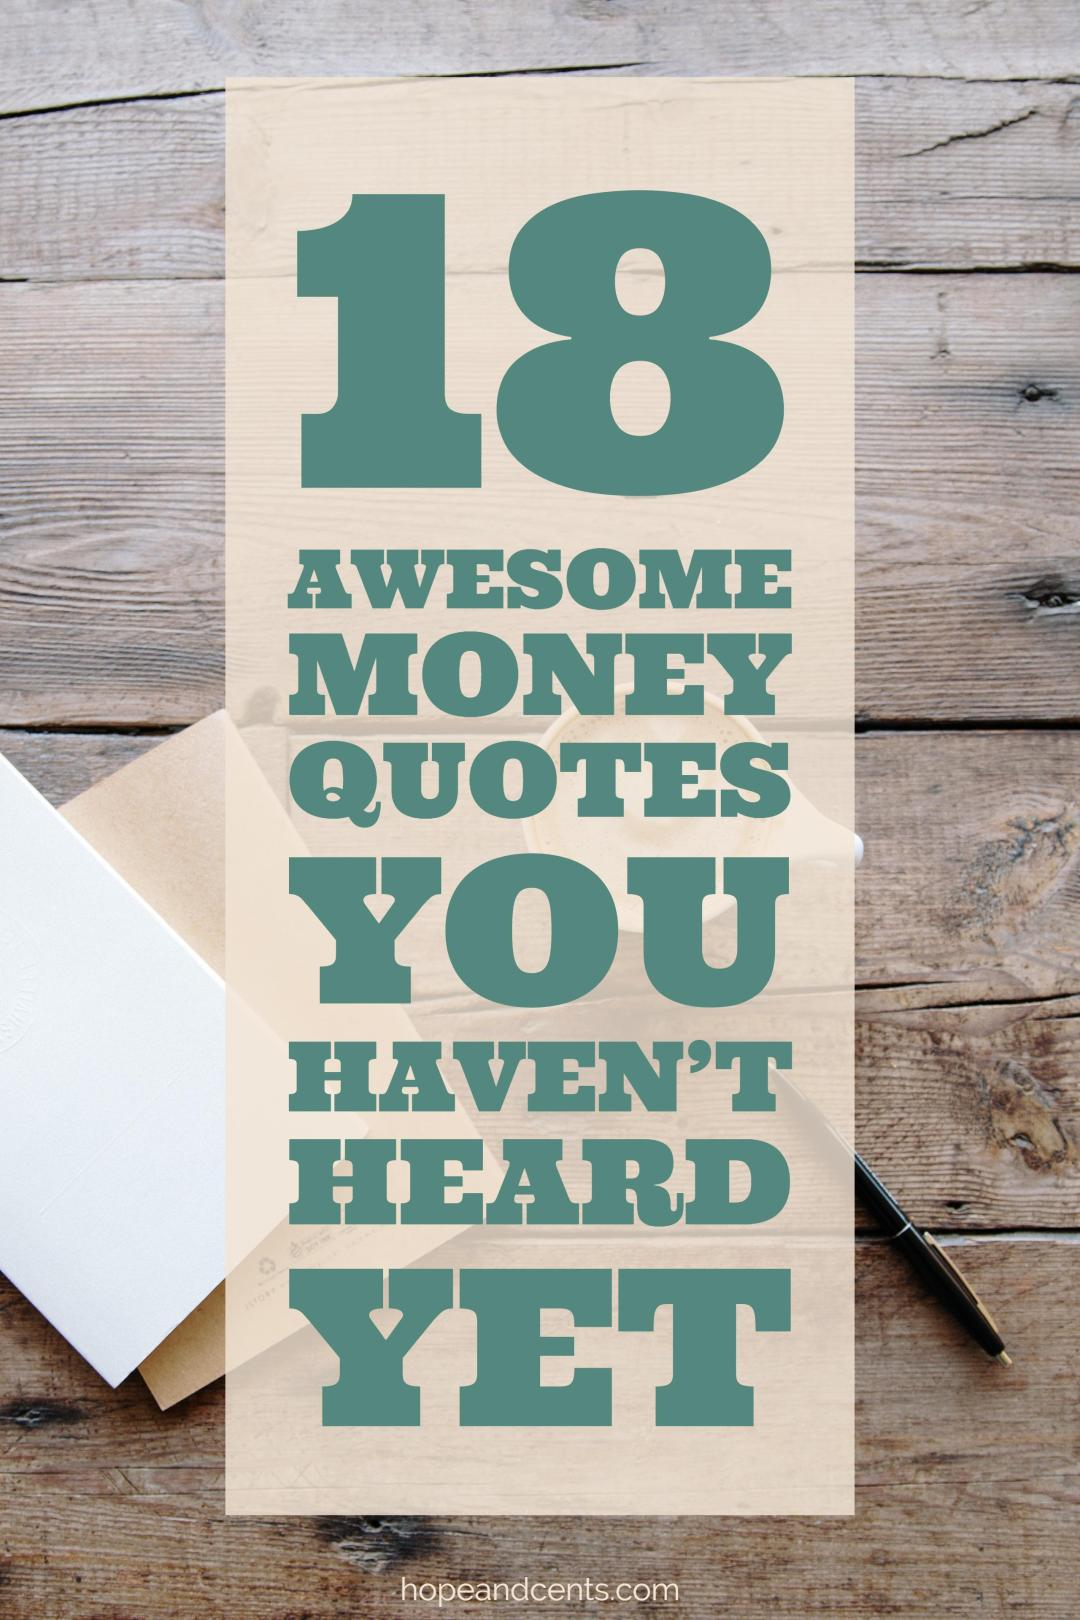 Get Money Quotes 18 Awesome Money Quotes You Haven't Heard Yet  Hopecents